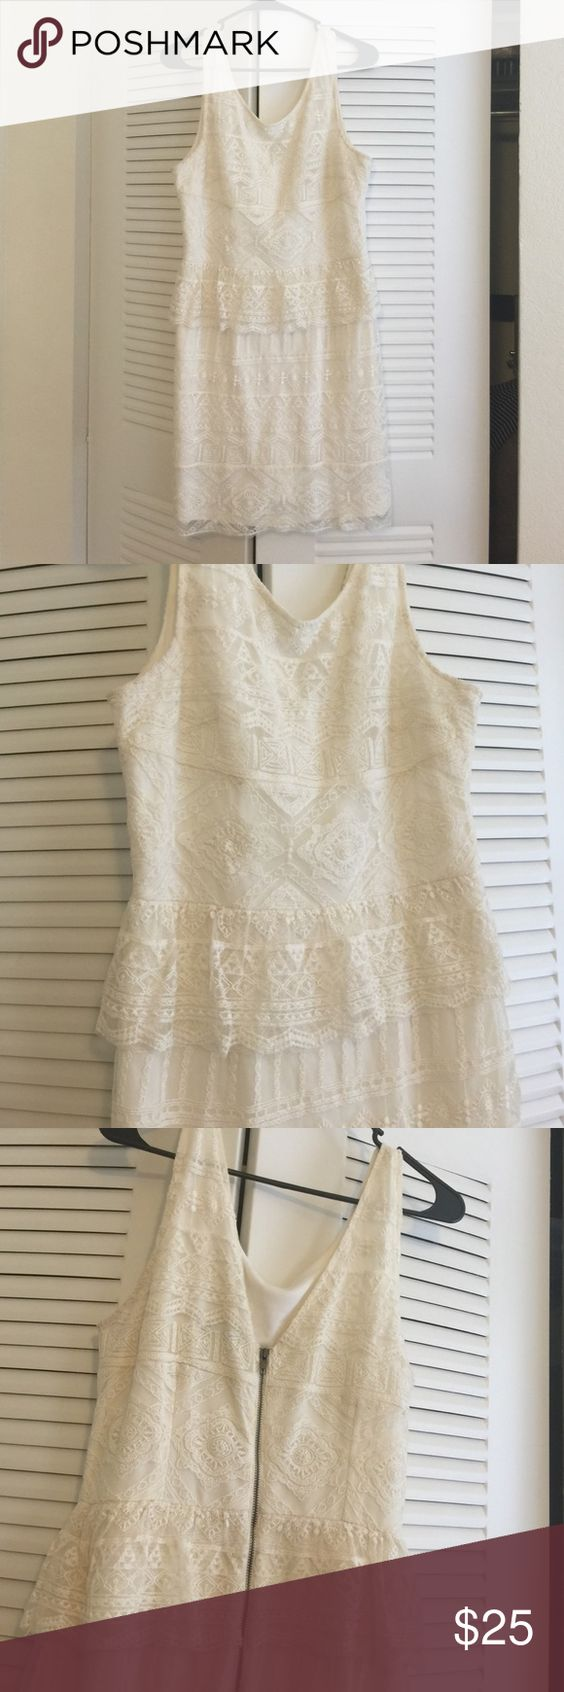 White crochet dress Good condition. Zipper back, form fitting dress. Crochet overlay. American Eagle Outfitters Dresses